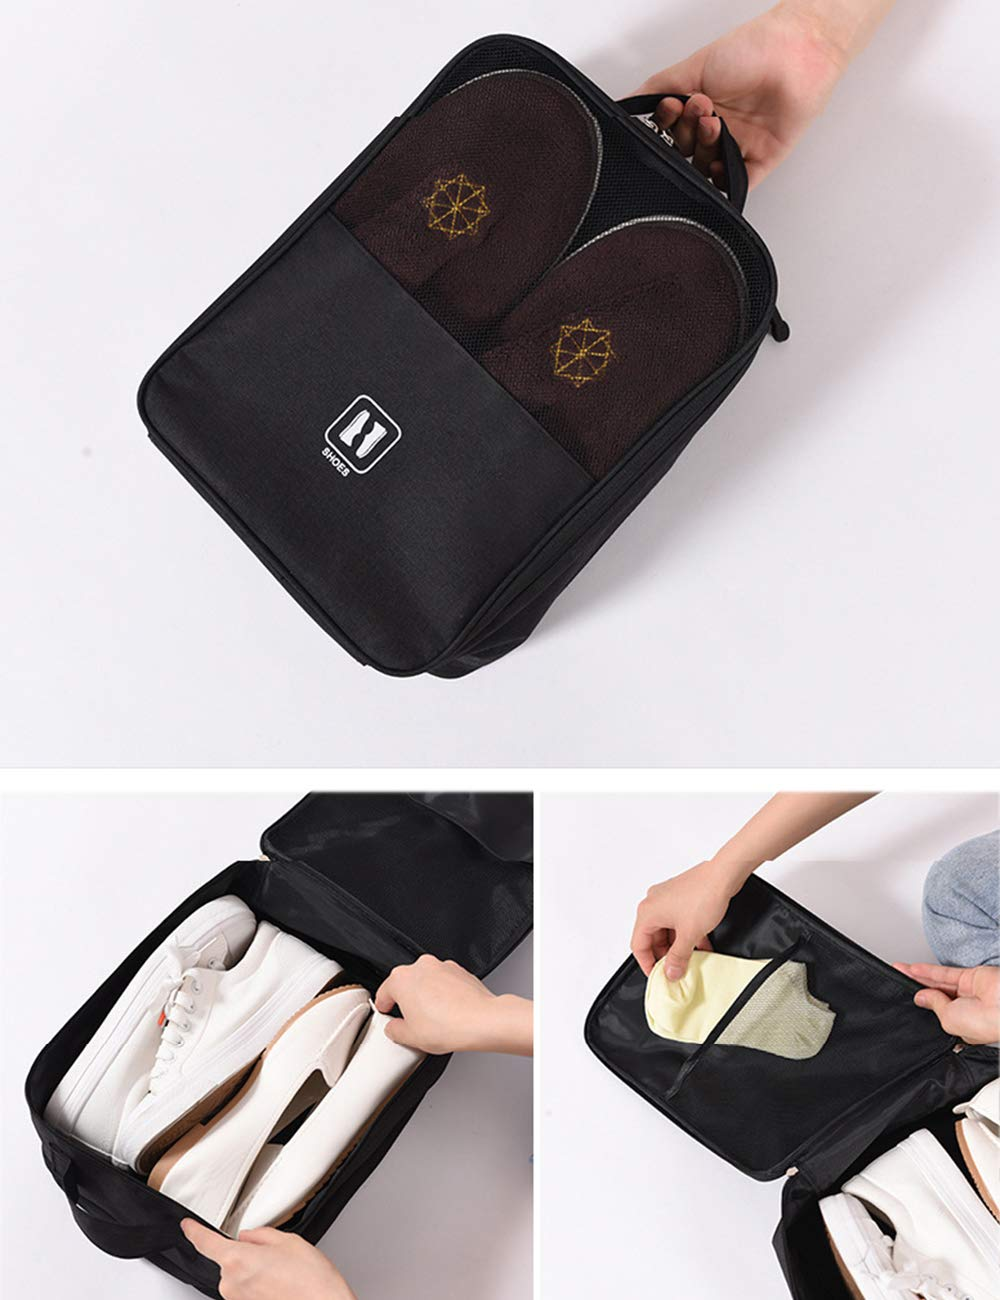 Zhhlinyuan Outdoor Travel Shoes Storage Bag Waterproof Handbag with Zipper /& Net